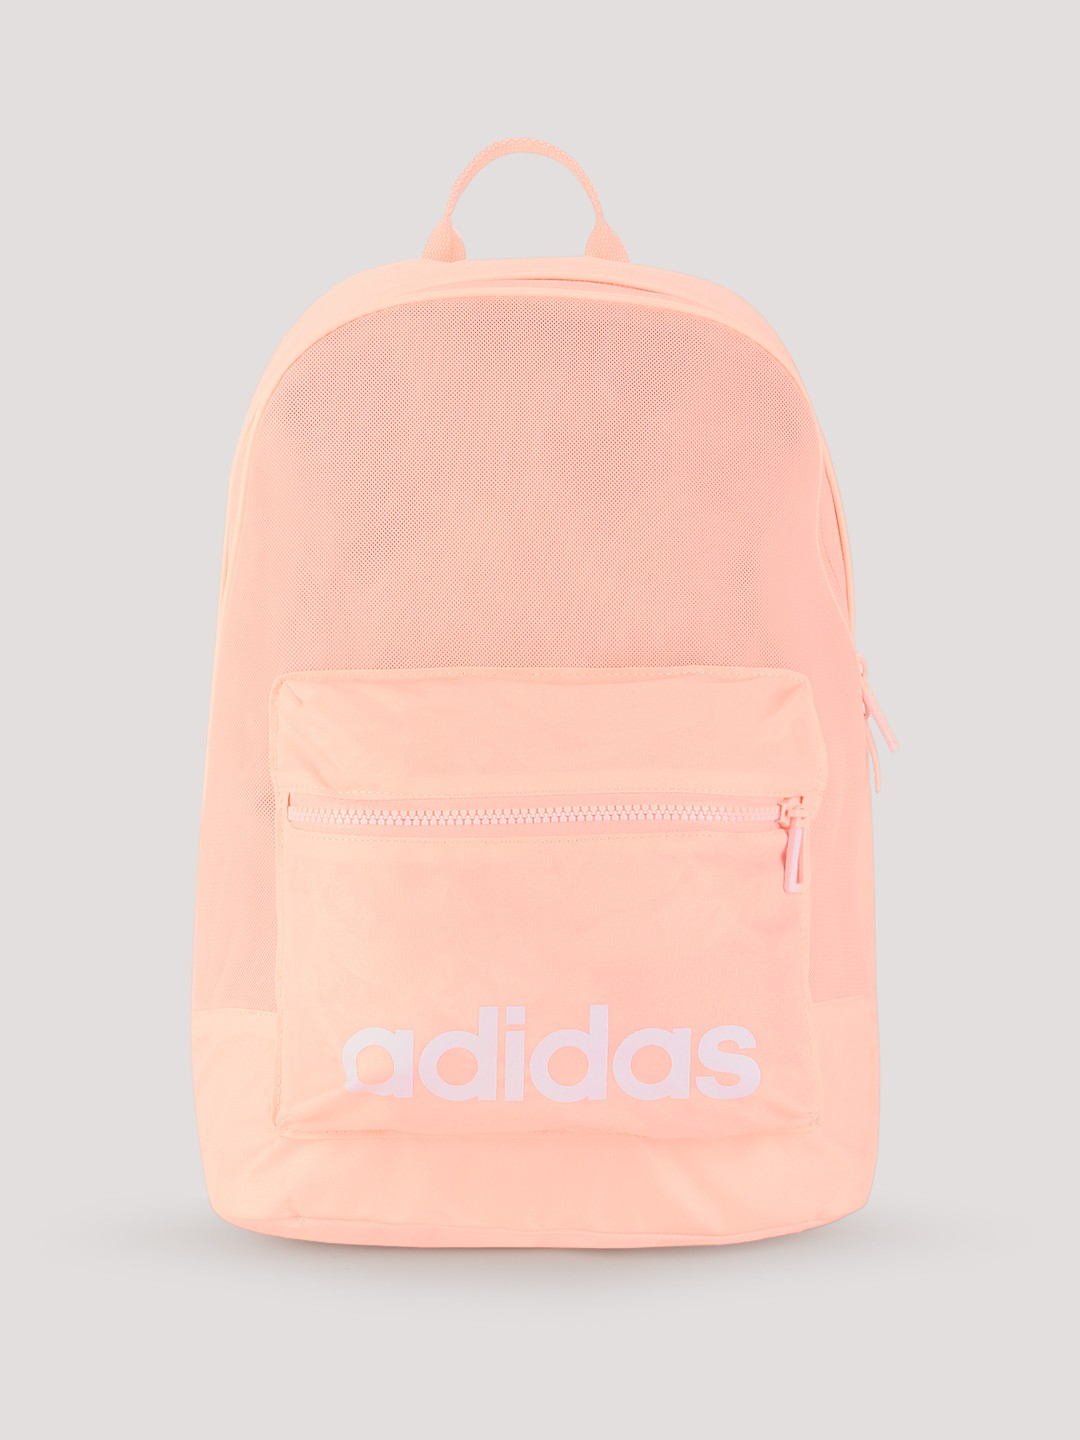 Buy ADIDAS NEO Backpack For Women Womens Pink Backpacks Online In India ac284b01cadd8